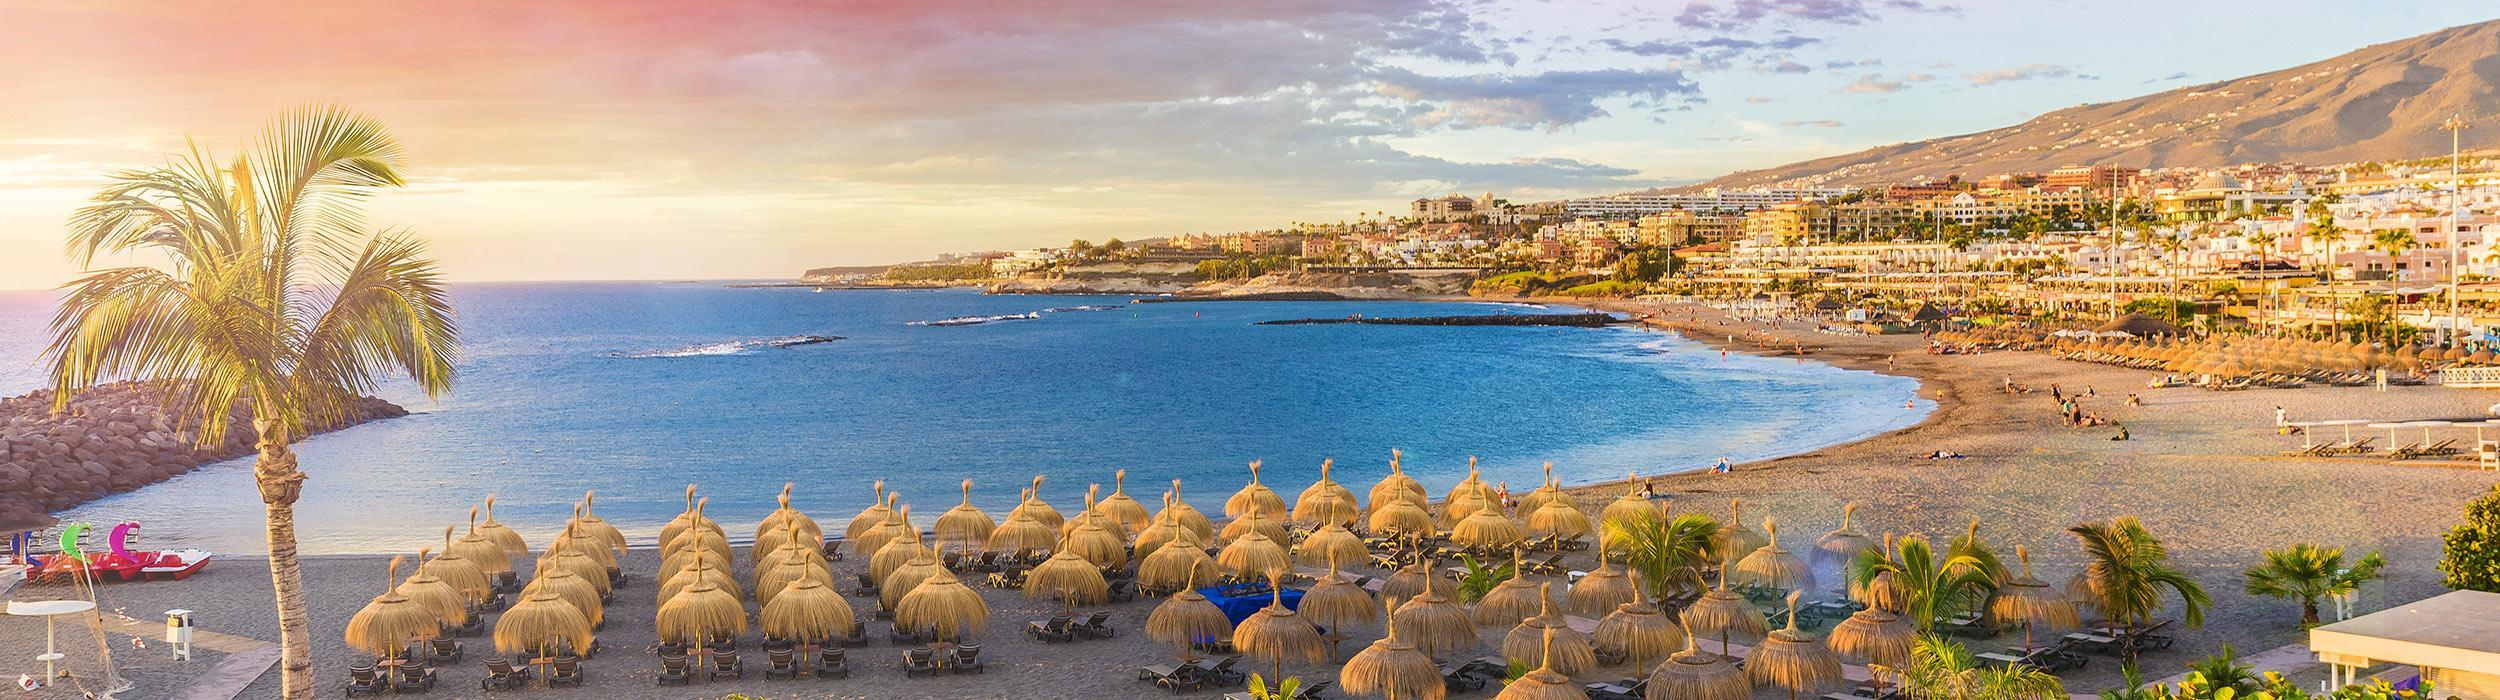 Tenerife on sale 30th September 10.00am